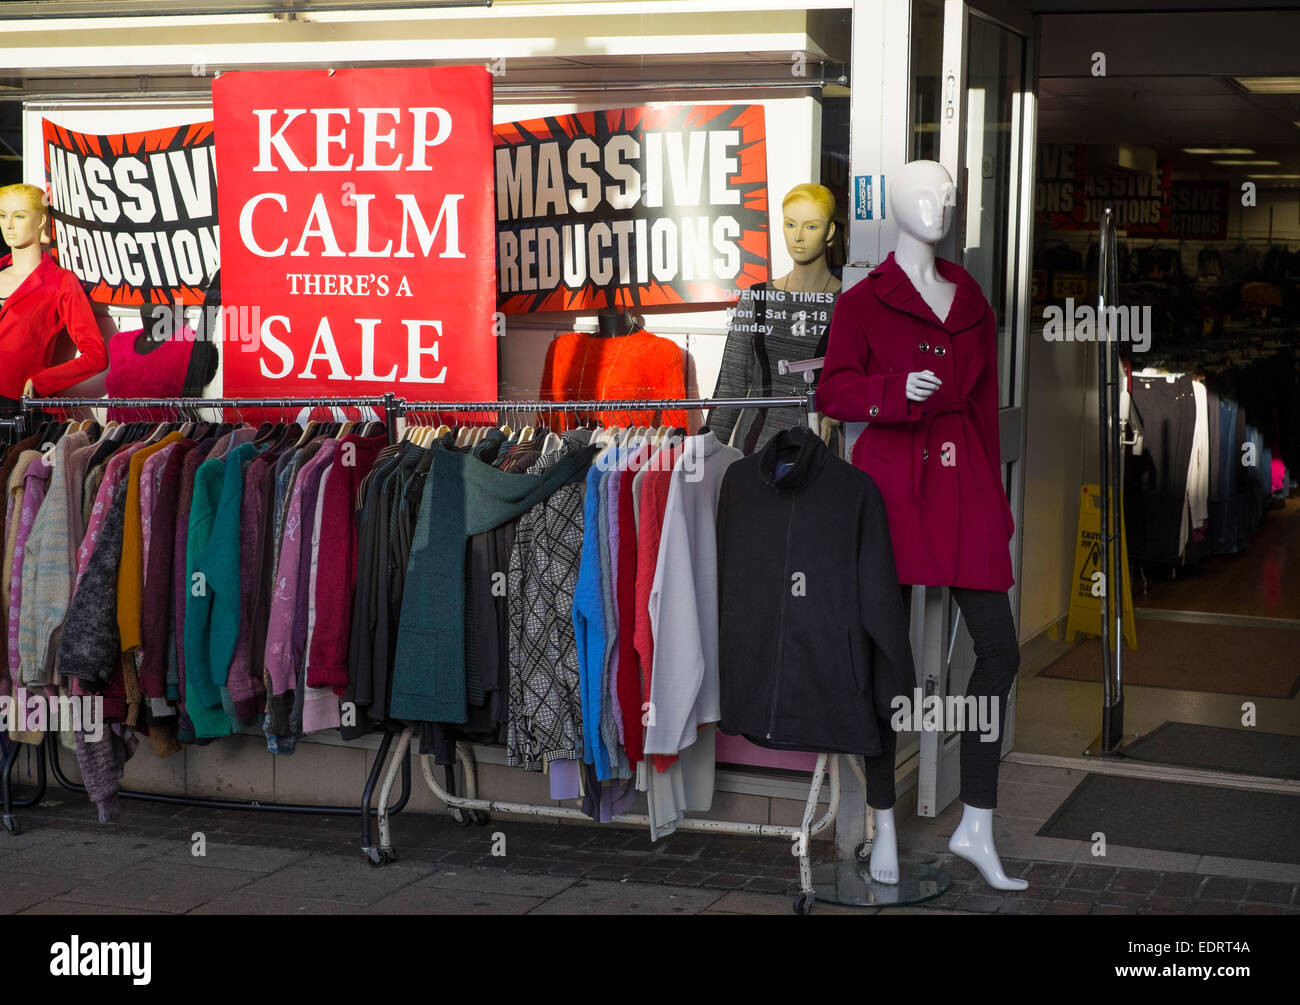 Sale signs outside a clothing shop in Walsall, West Midlands, England, UK - Stock Image